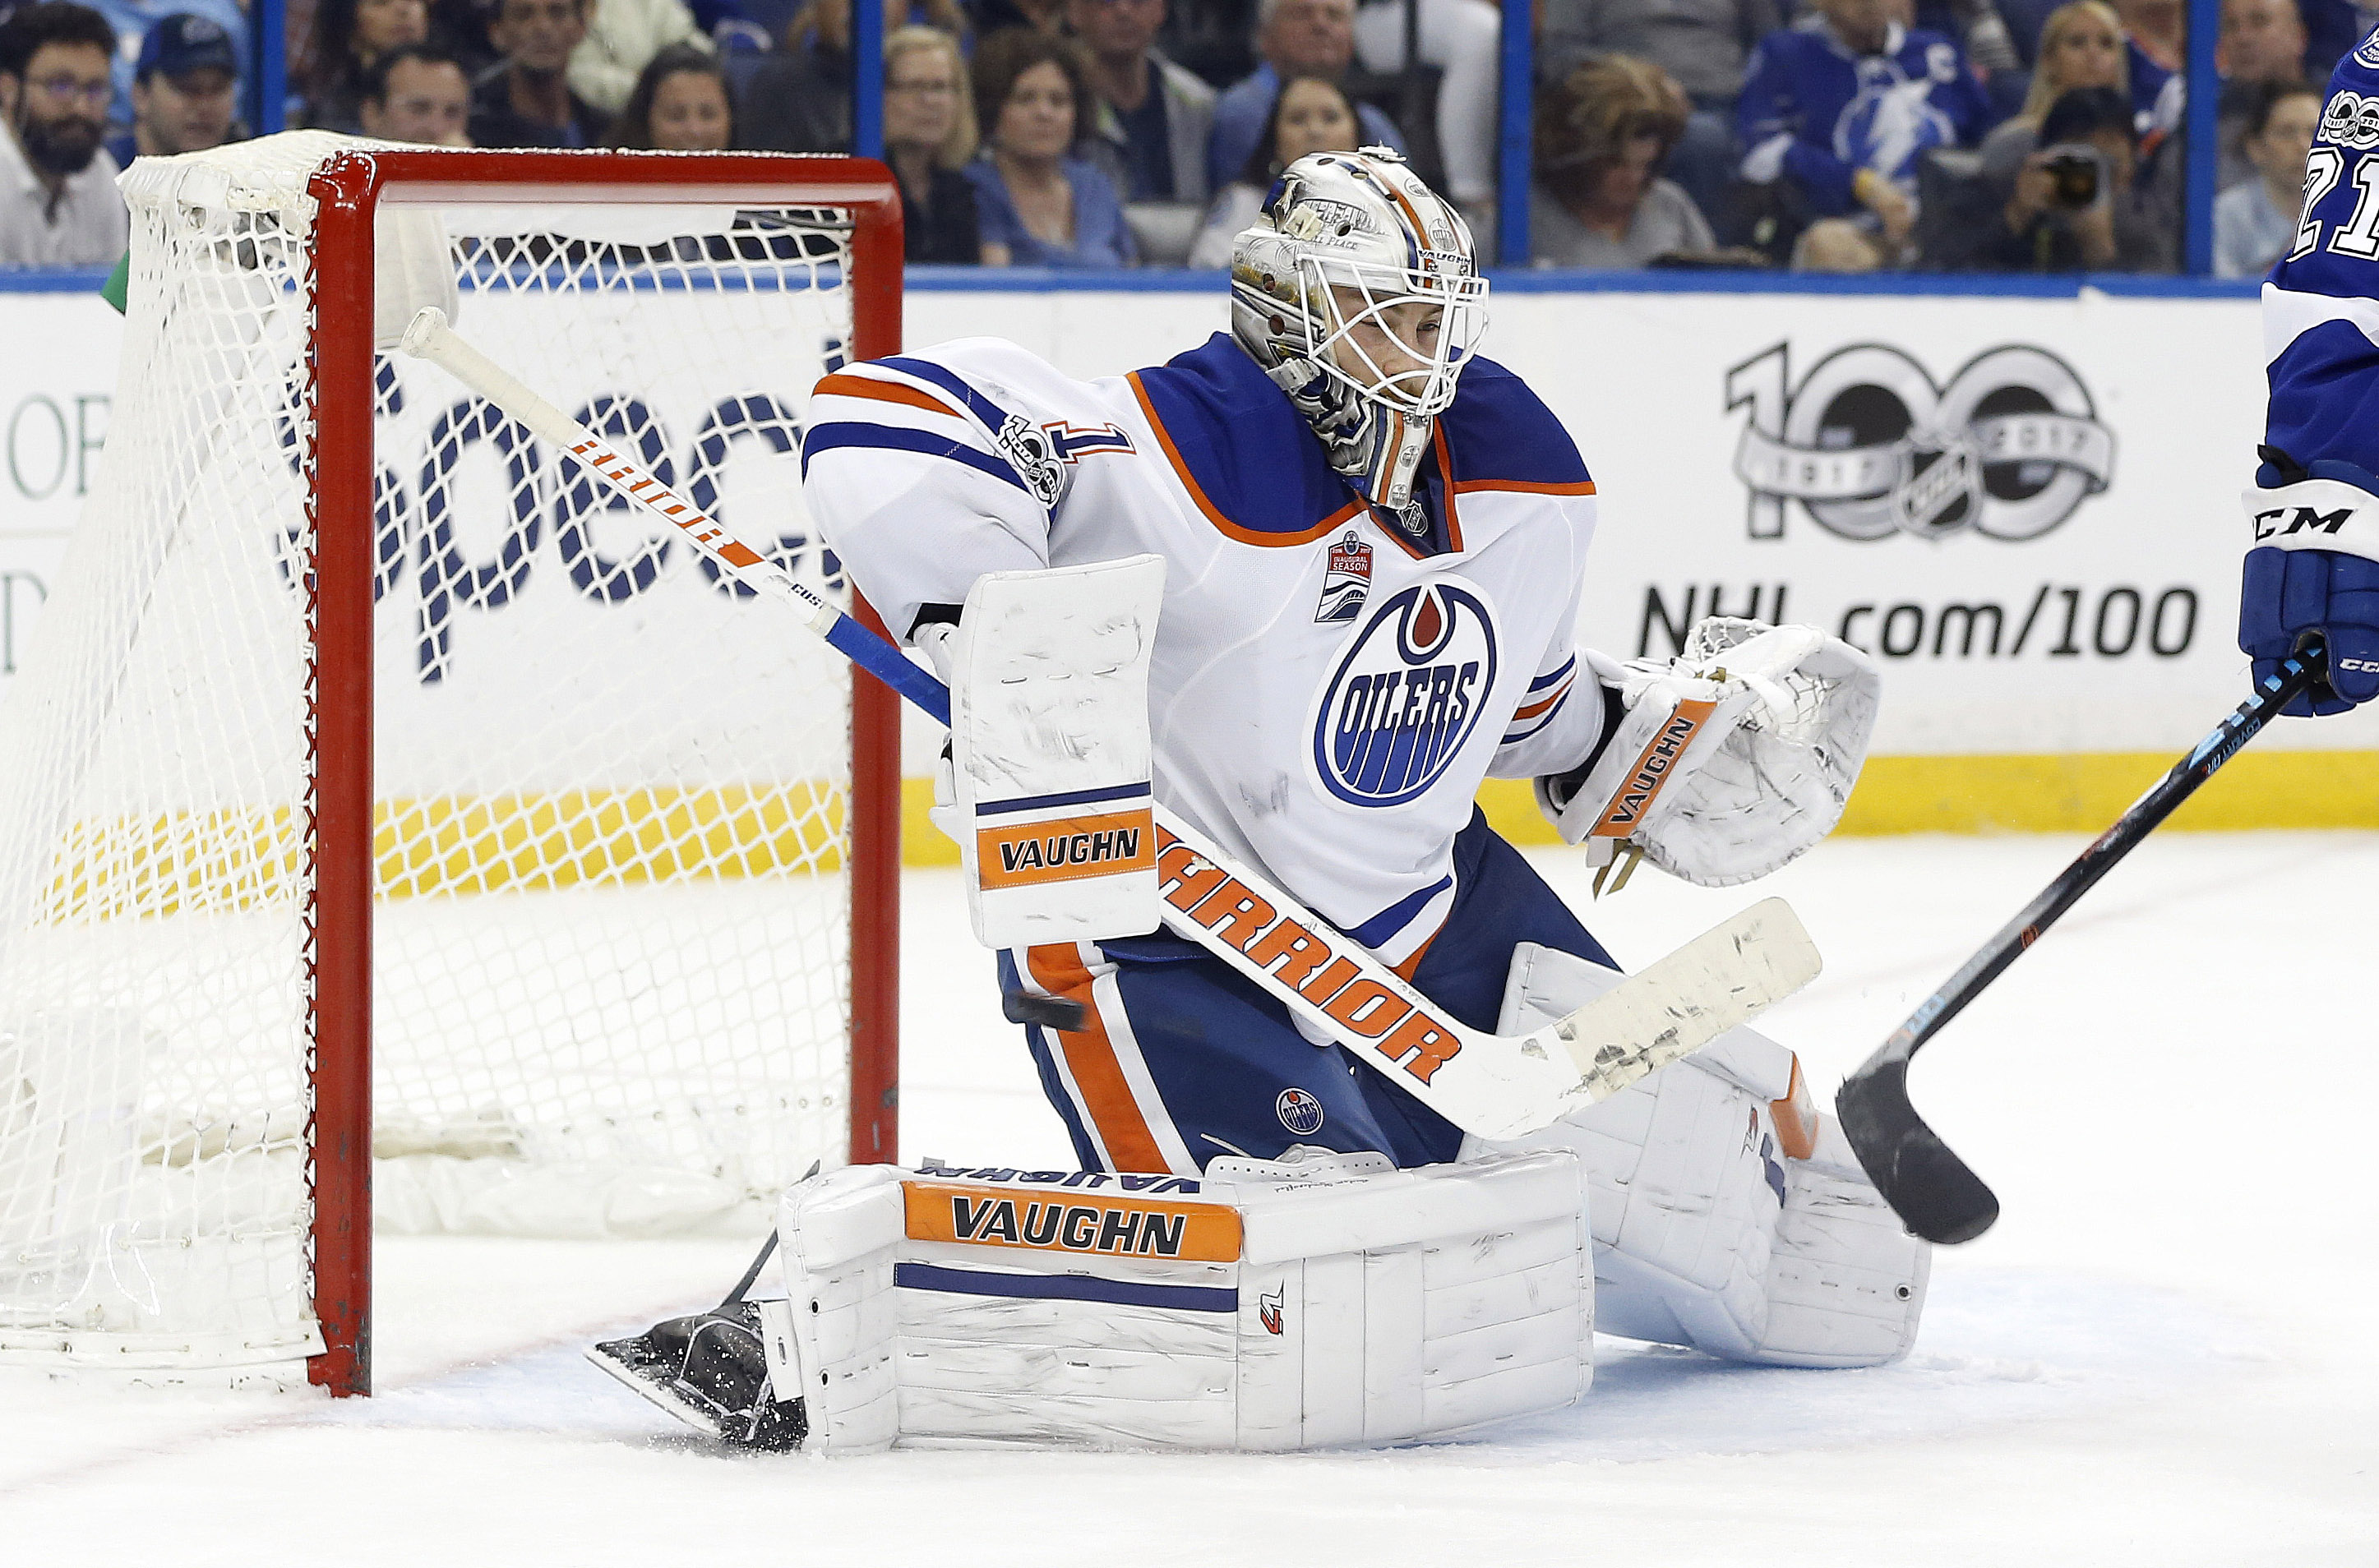 Schwartz discusses new role with the WHL, Talbot, Brossoit and more